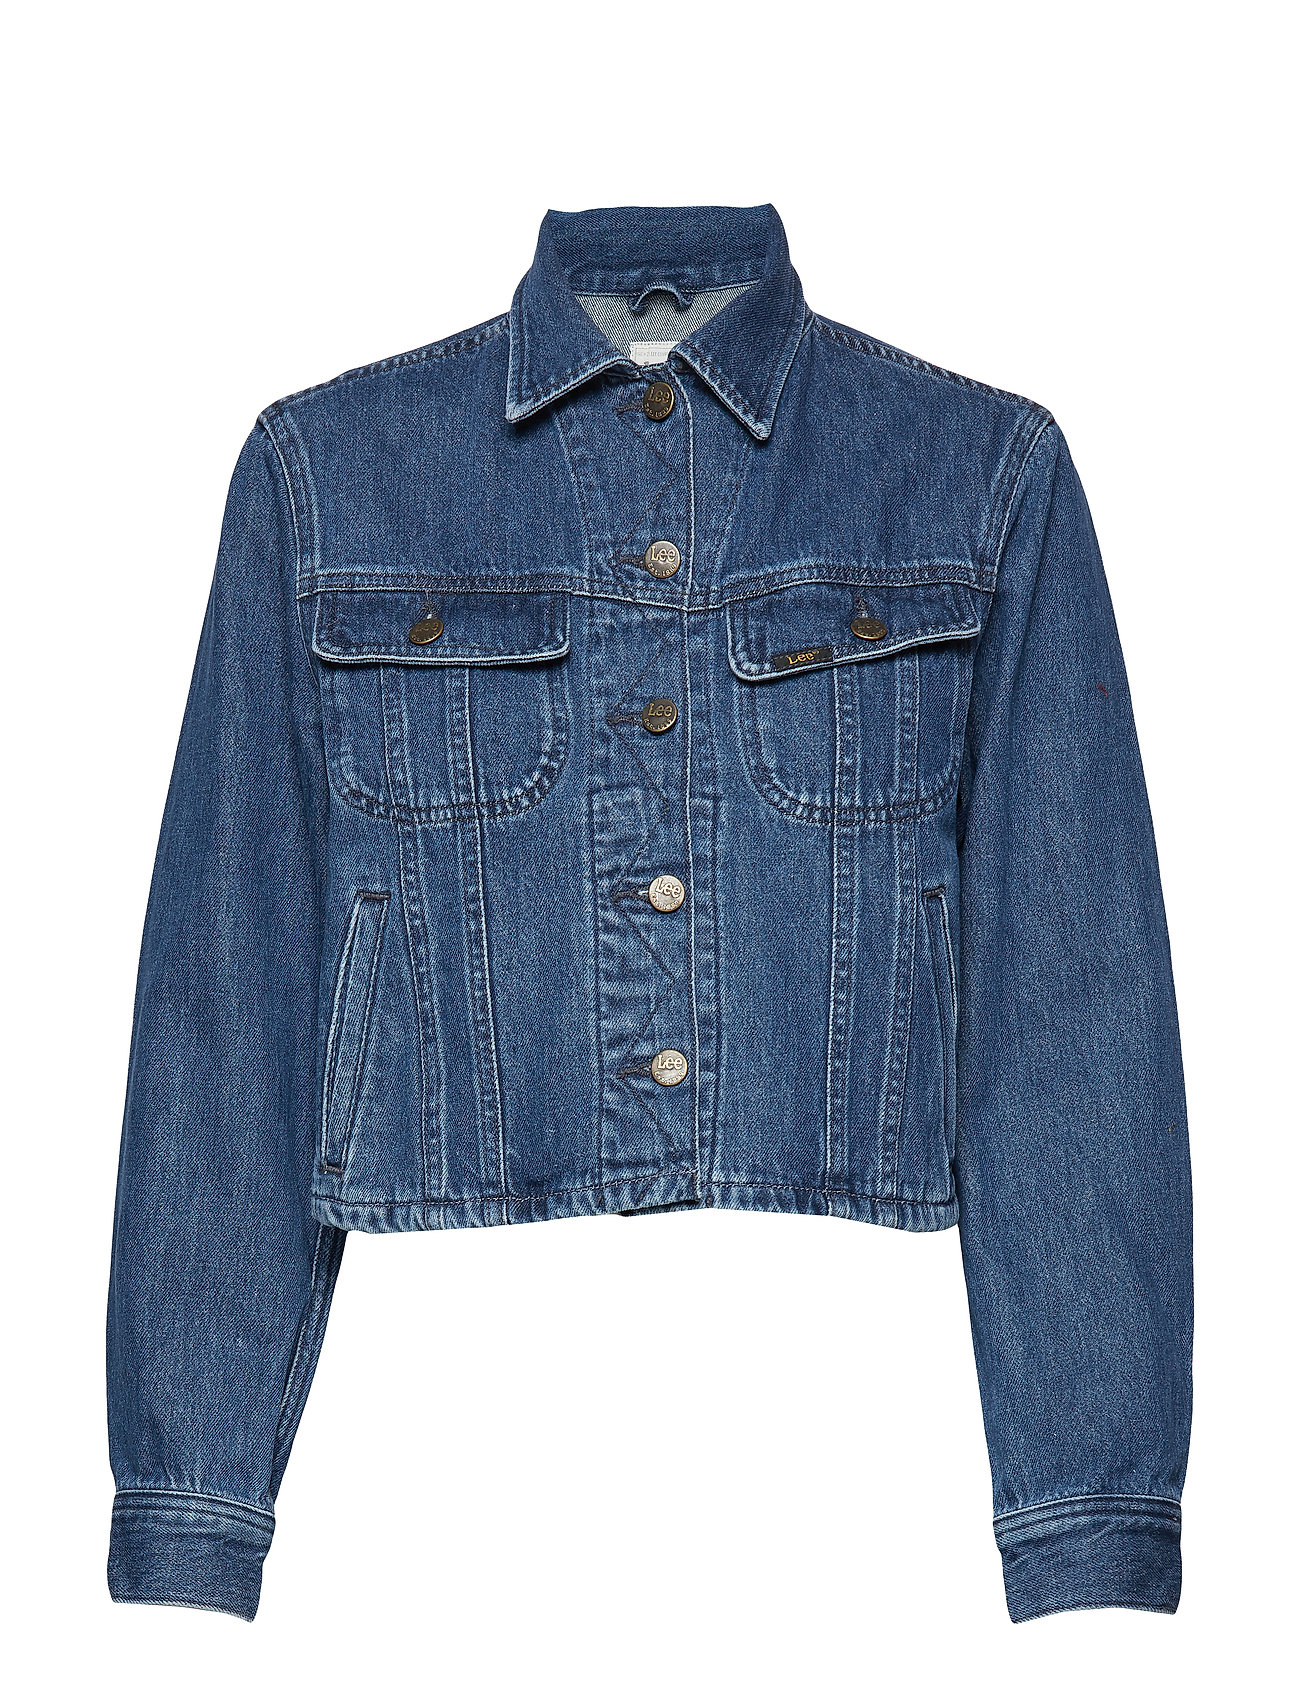 Lee Jeans CROPPED RIDER JACKET - TIC